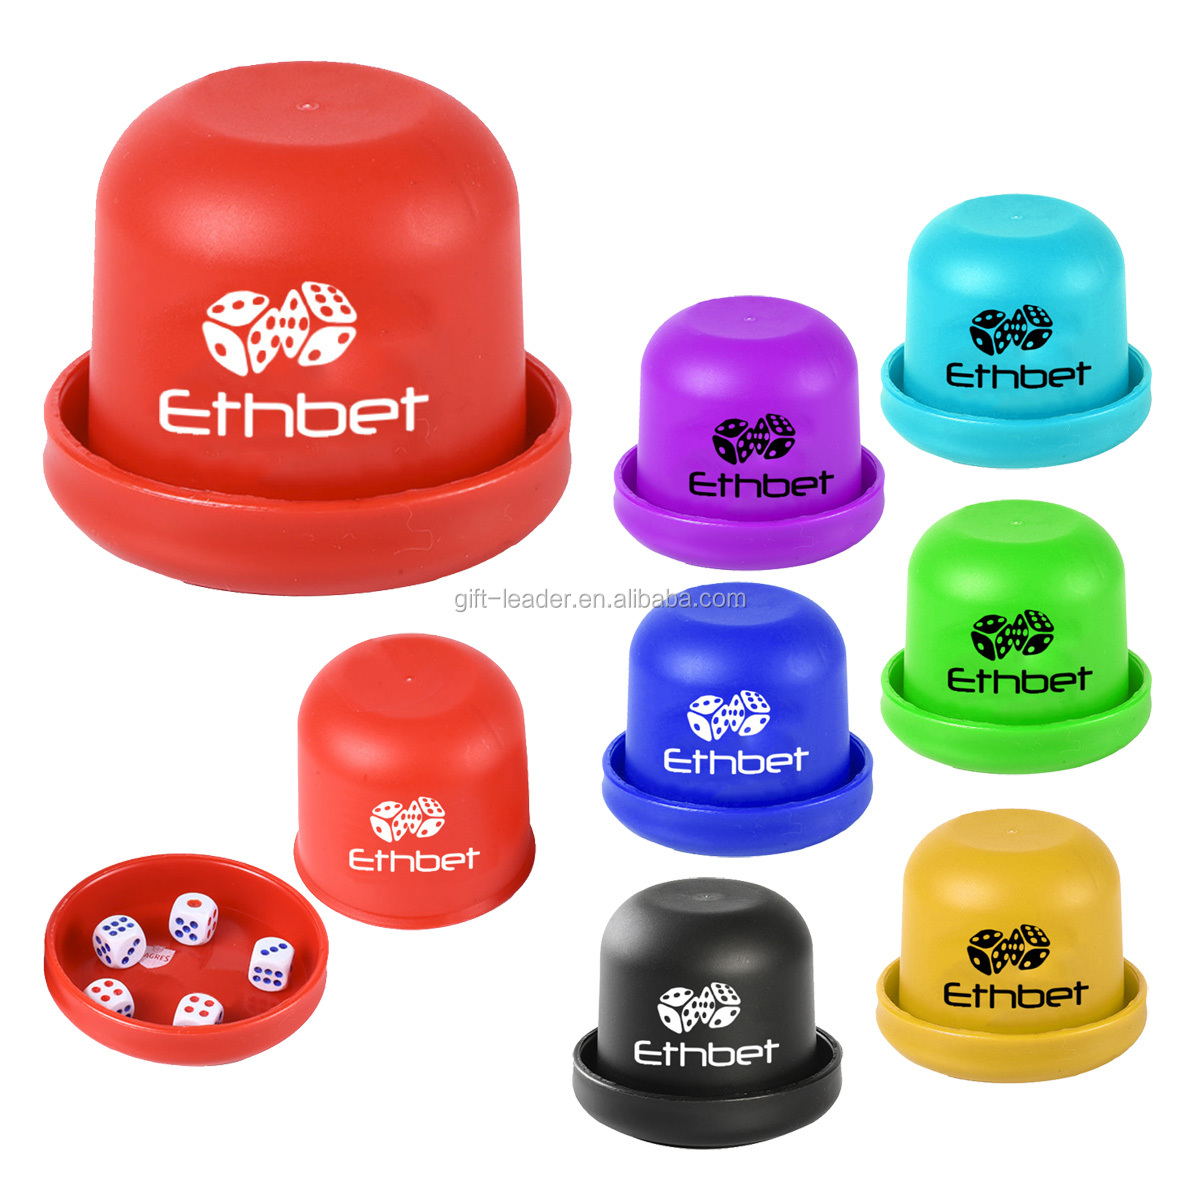 Classic promotion gift small blank logo portable cheap smart plastic play game toys gamble dice cup set shaker 5 pcs dice box